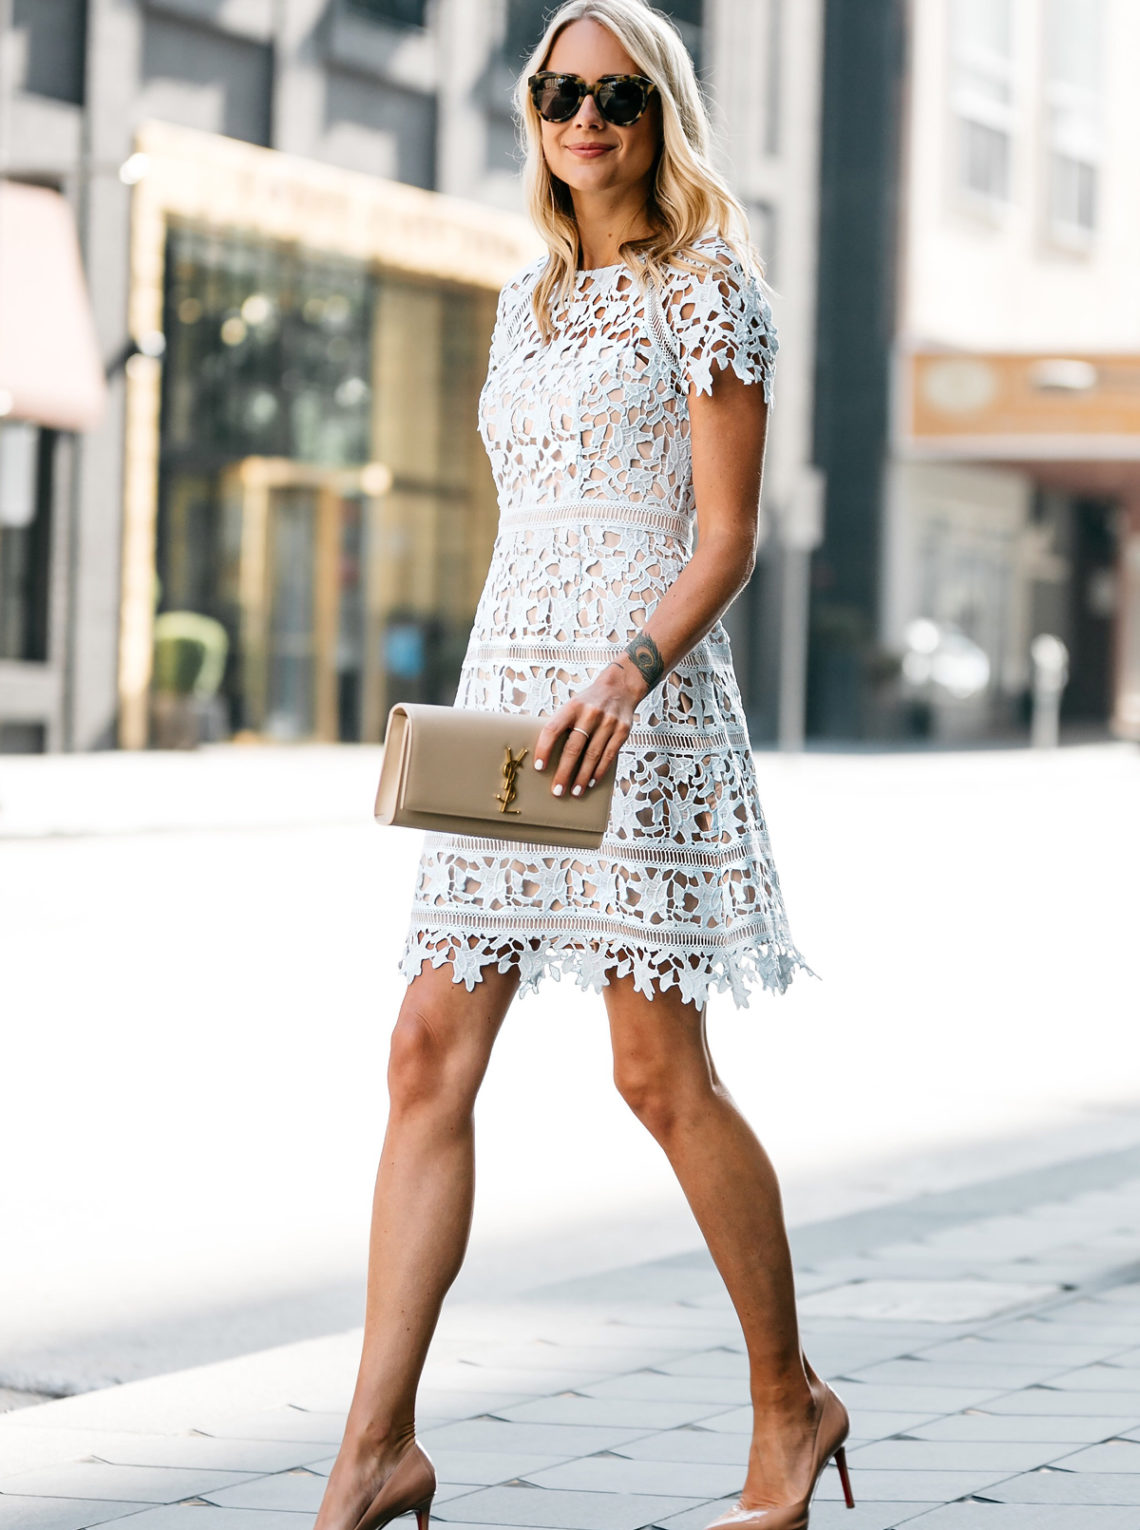 Blonde Woman Wearing Nordstrom Short Sleeve Blue Lace Dress Holding YSL Nude Clutch